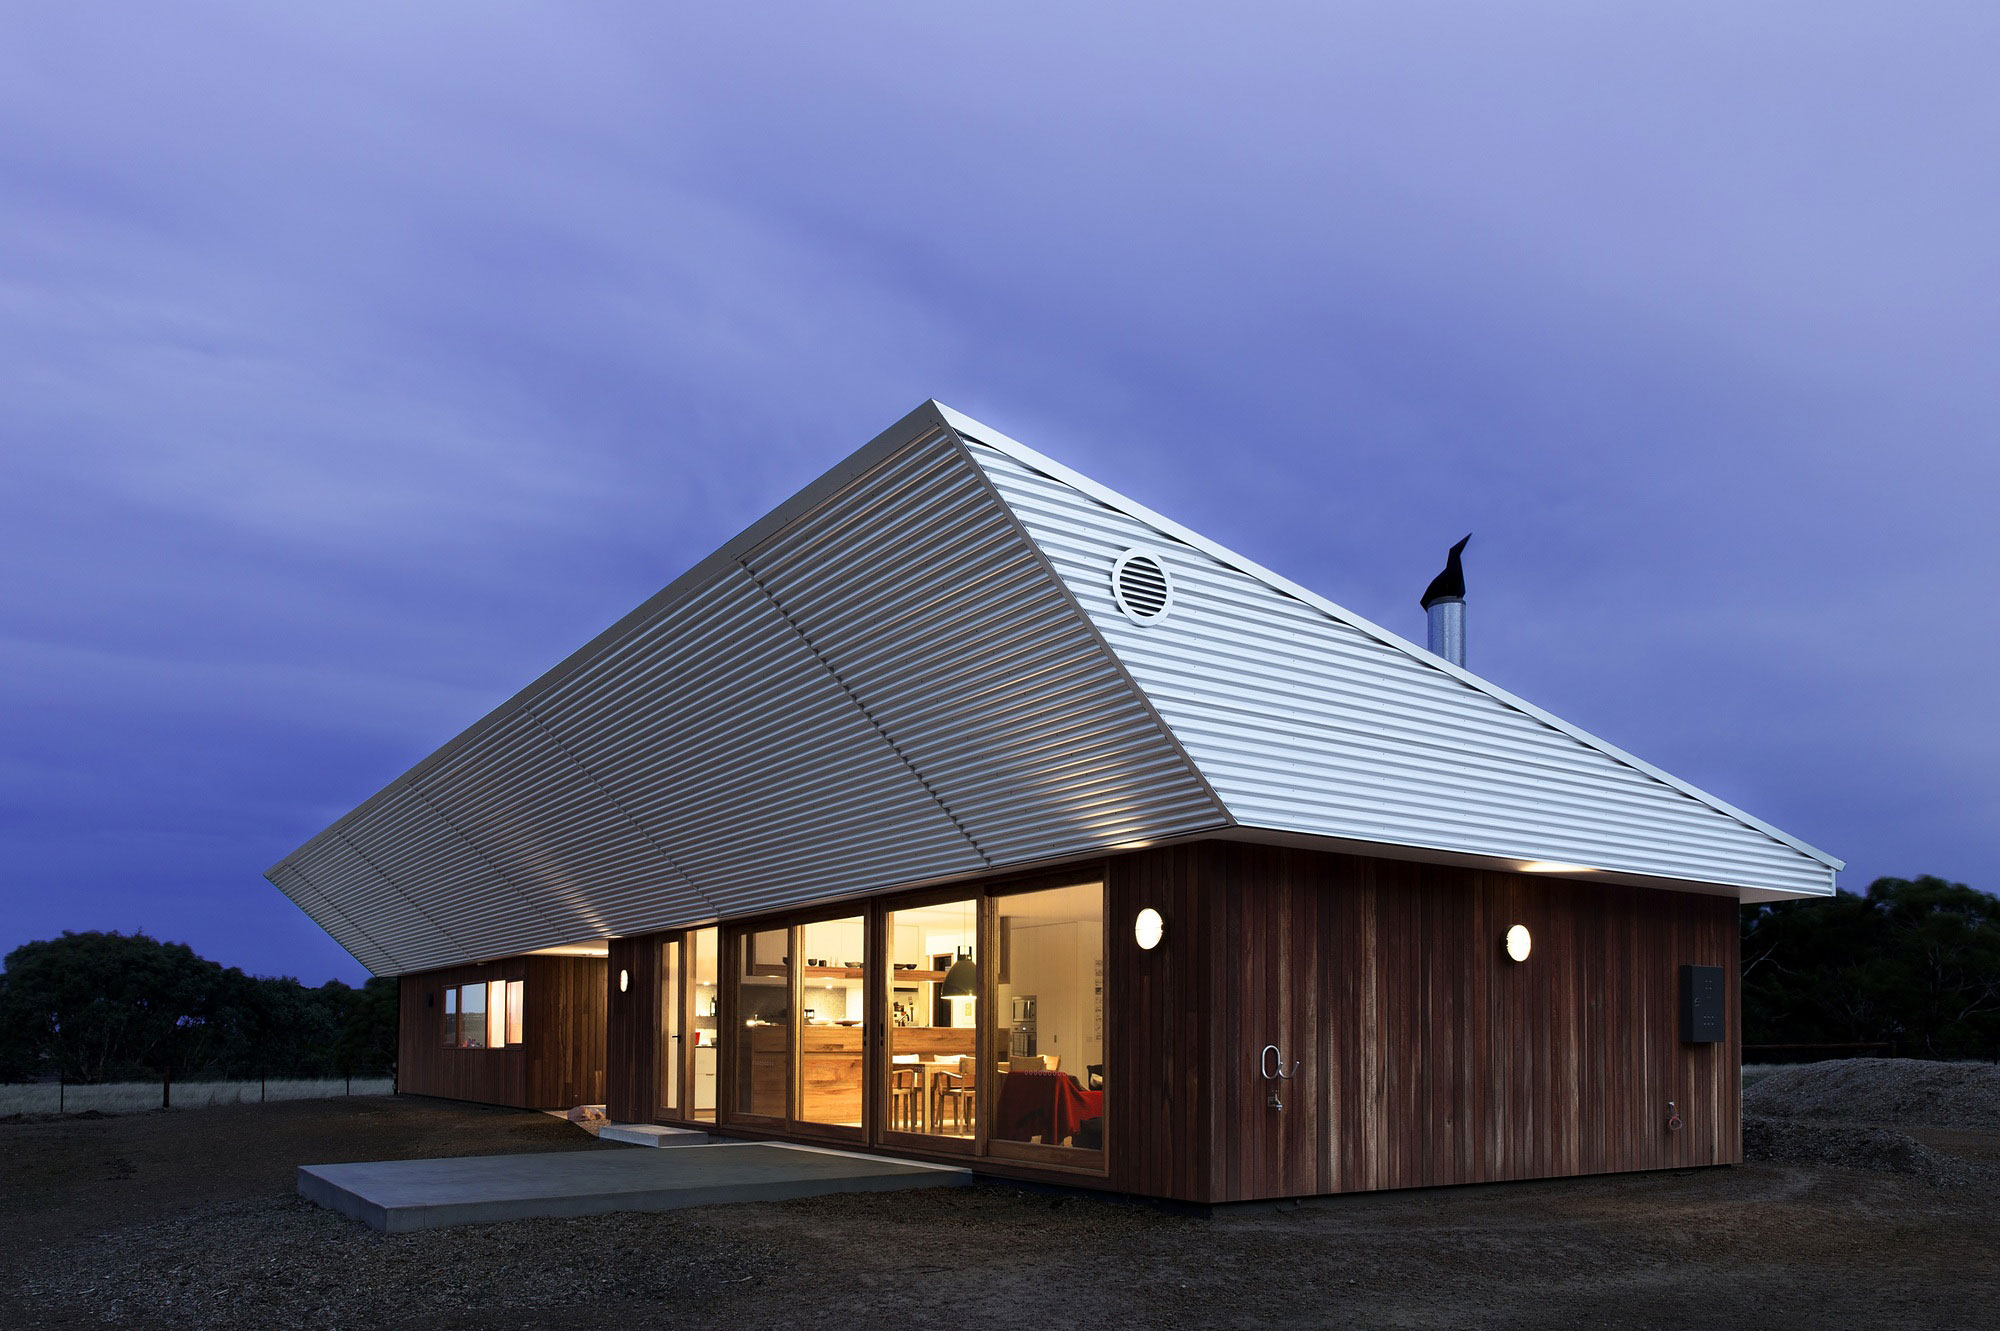 Energy Efficient House By Cooper Scaife Architects Homedezen